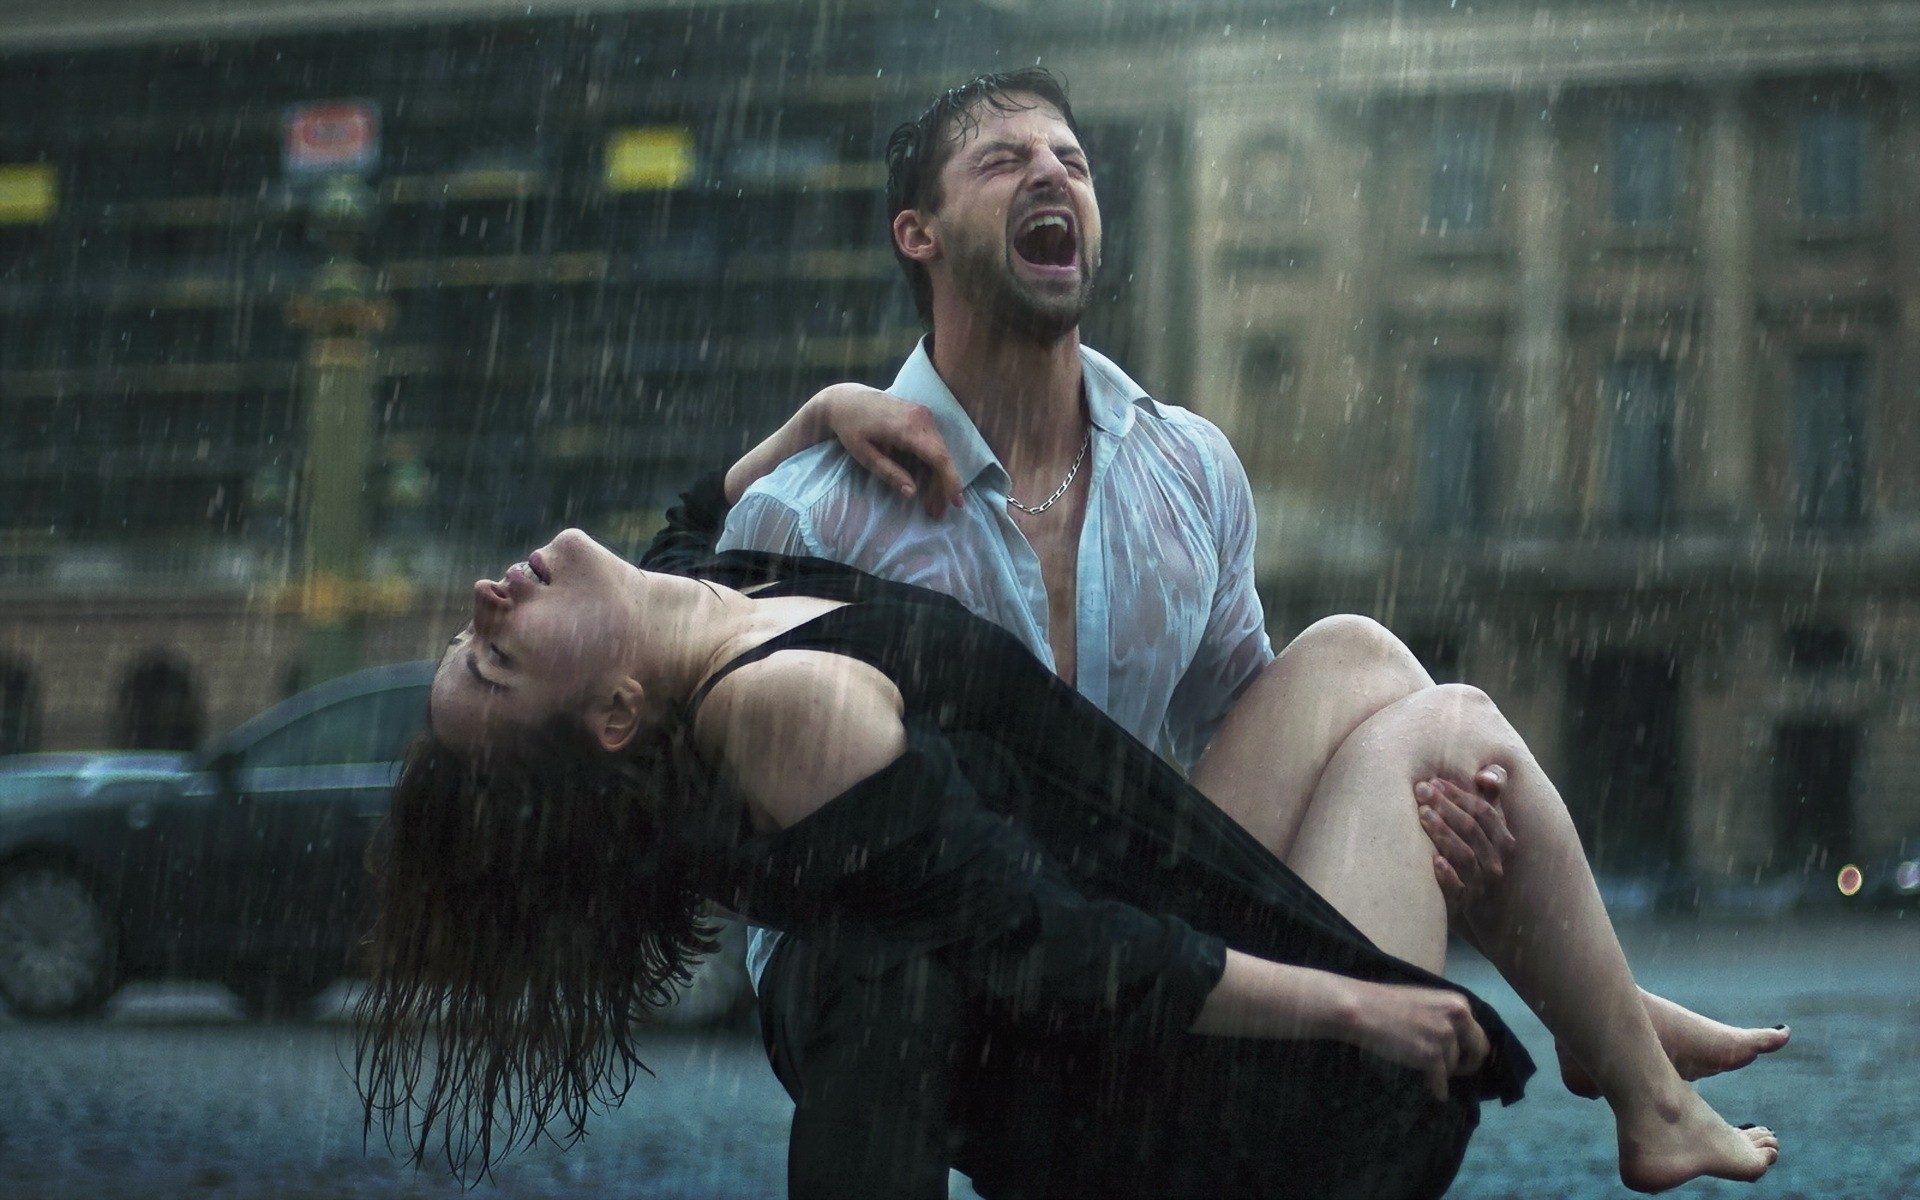 Sad couples crying in rain